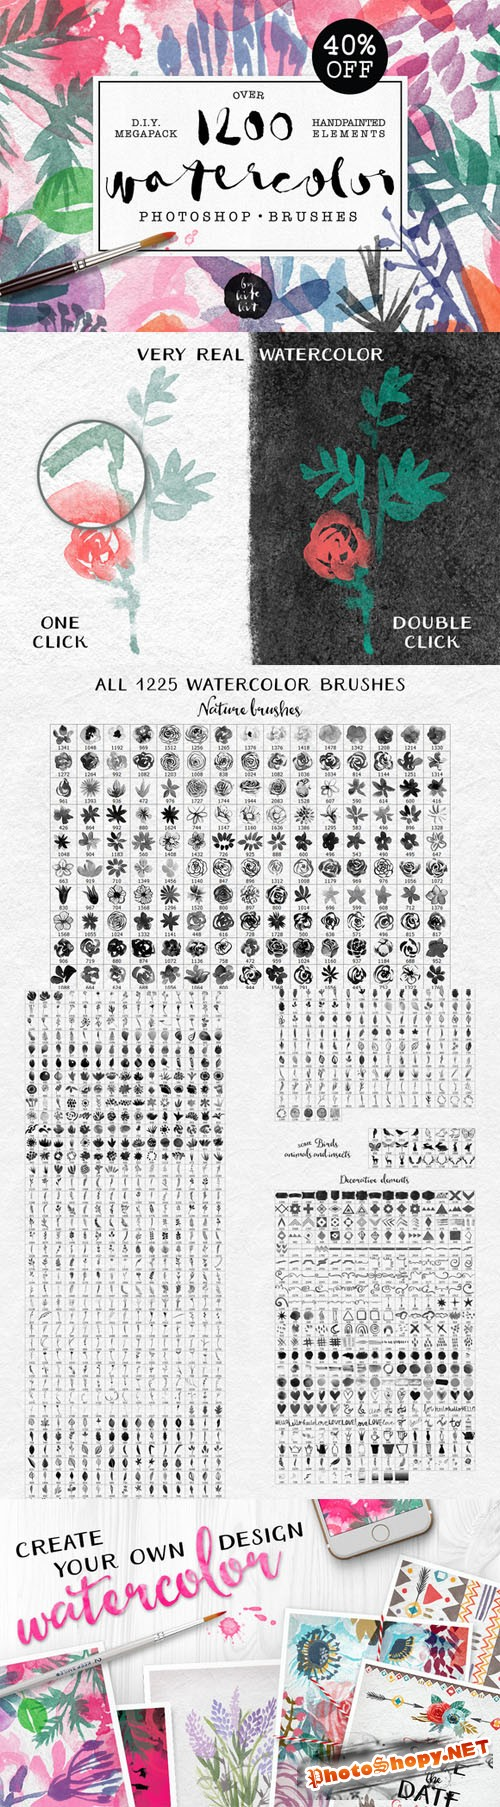 Watercolor PS Brushes 1200+ Creativemarket 210299